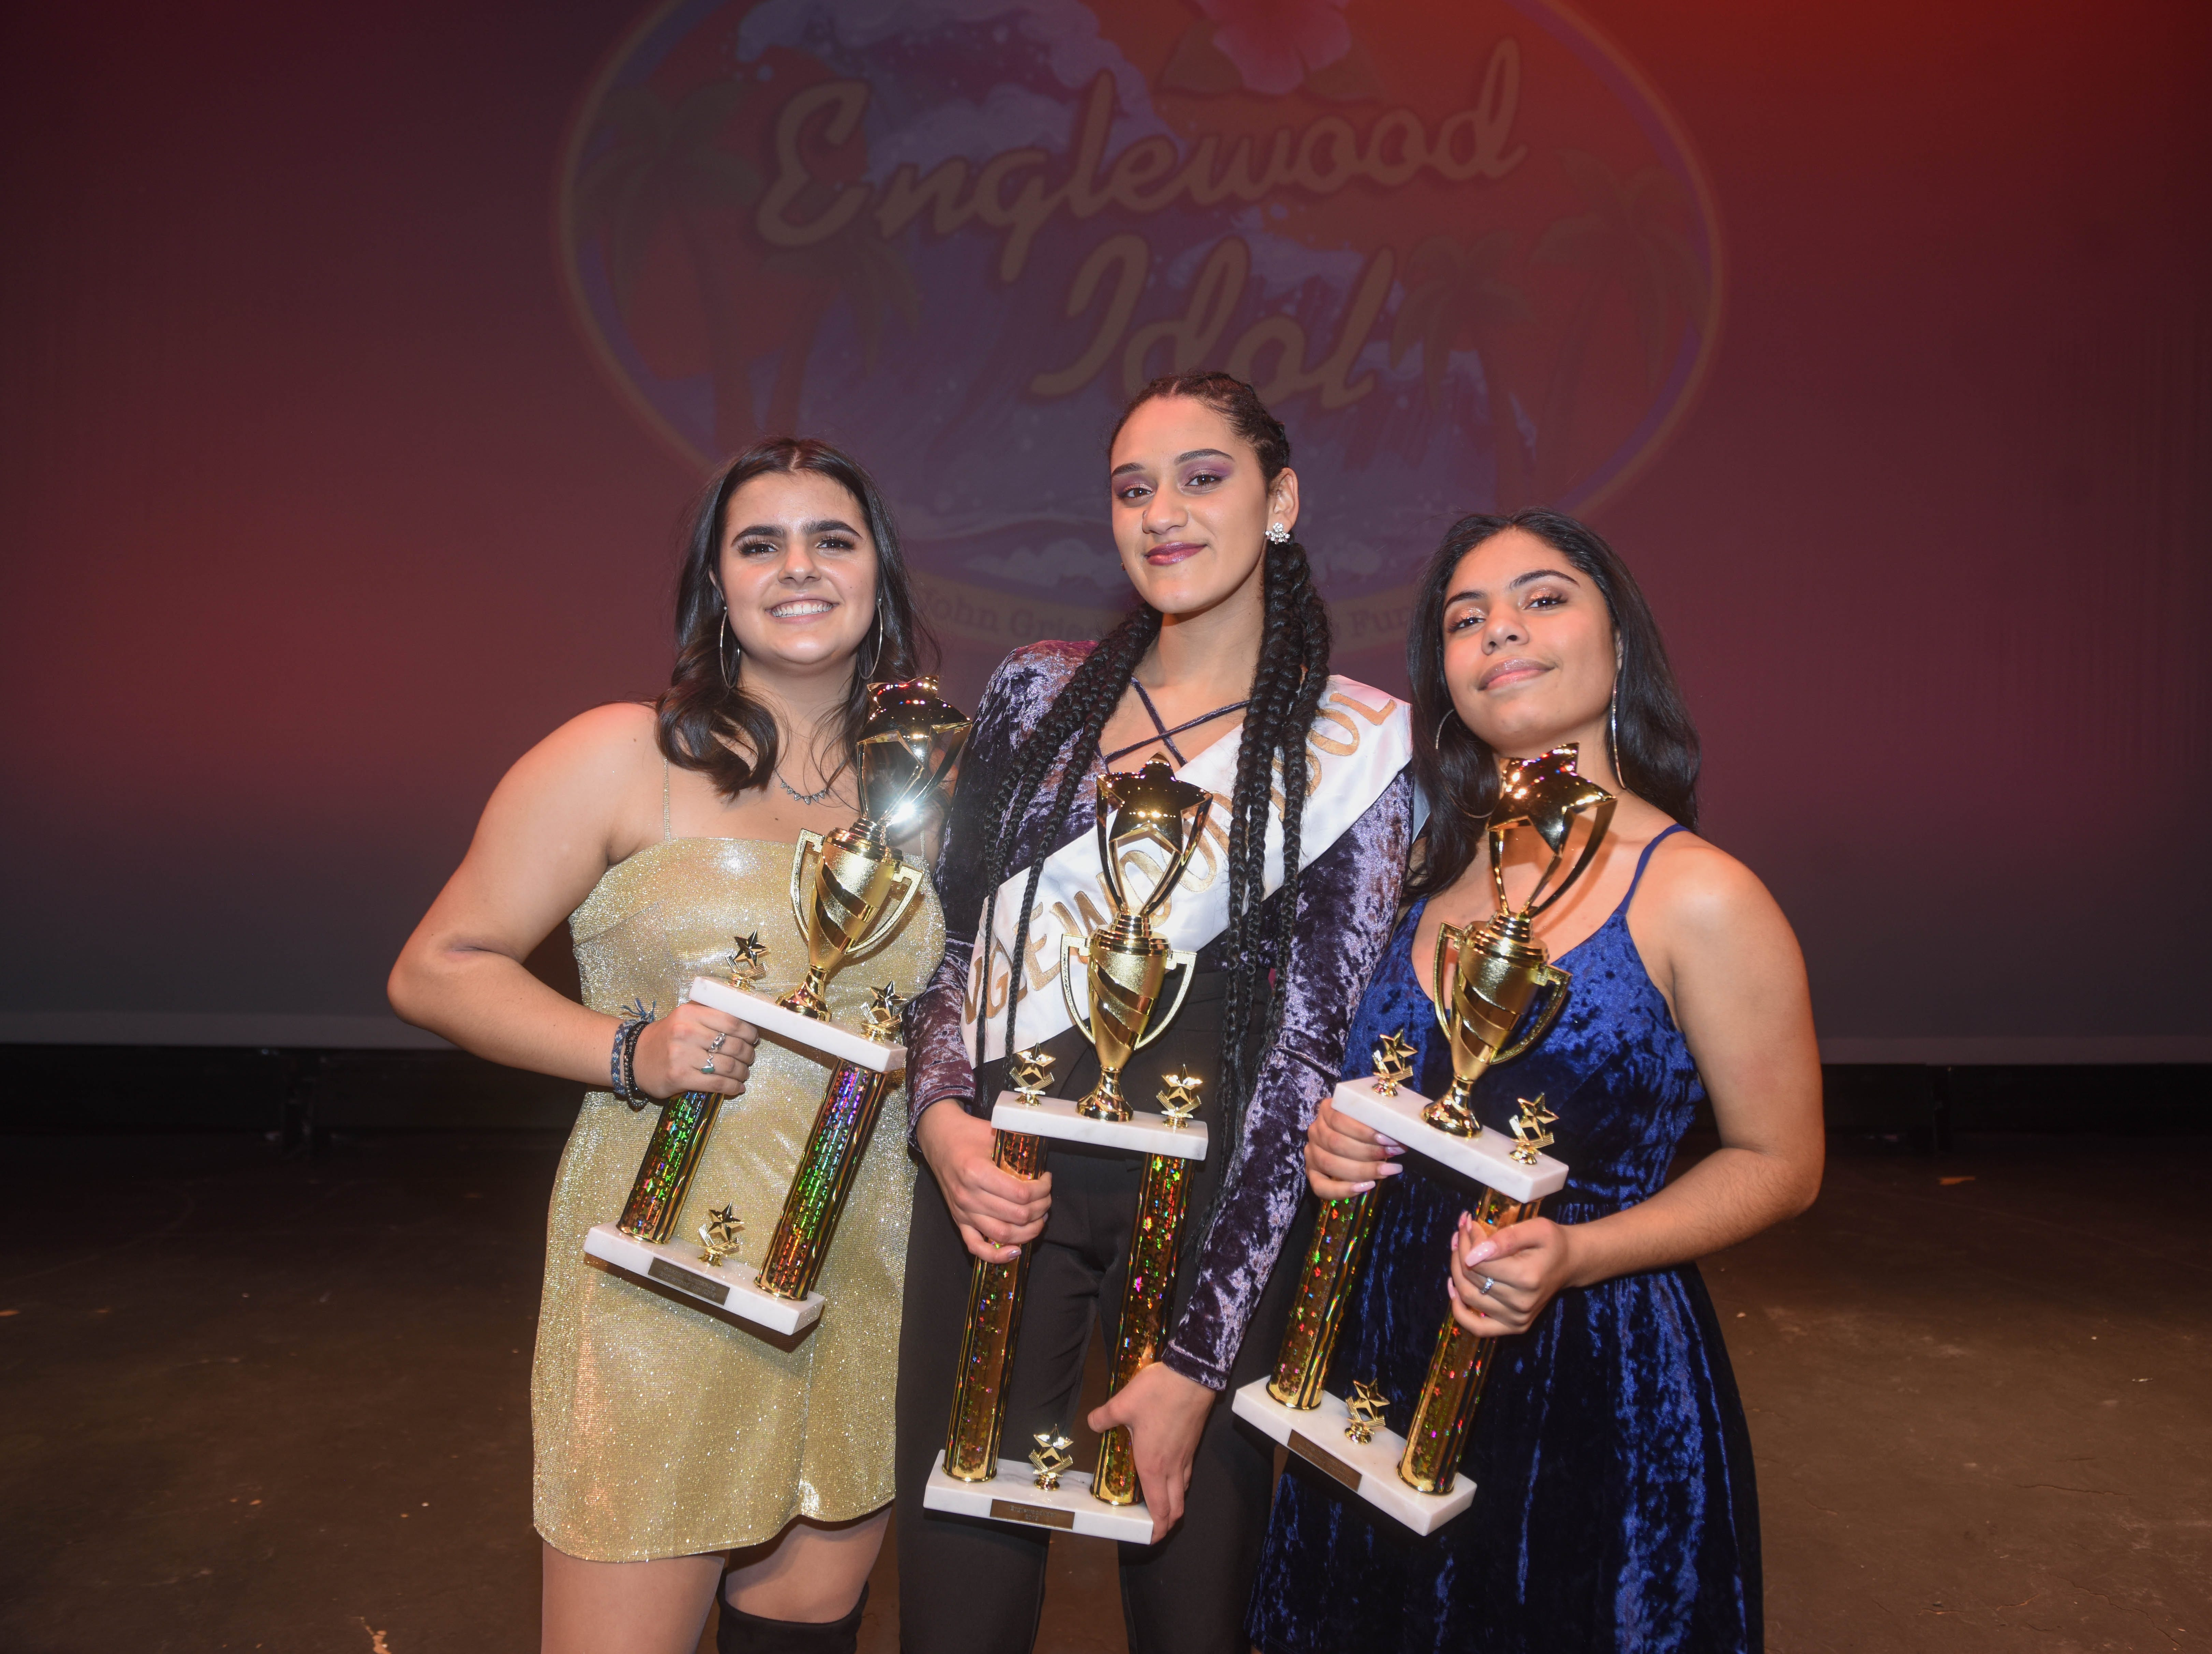 Lena Graf (2019 Englewood Idol Second Runner Up), Genesis Capellan (2019 Englewood Idol Winner) and Patricia Parker (2019 Englewood Idol First Runner Up). The 2019 Englewood Idol was held at bergenPAC theater. The singing competition is open to any high school student who currently lives or goes to school in Englewood, NJ. This years winner was Genesis Capellan. 01/11/2019